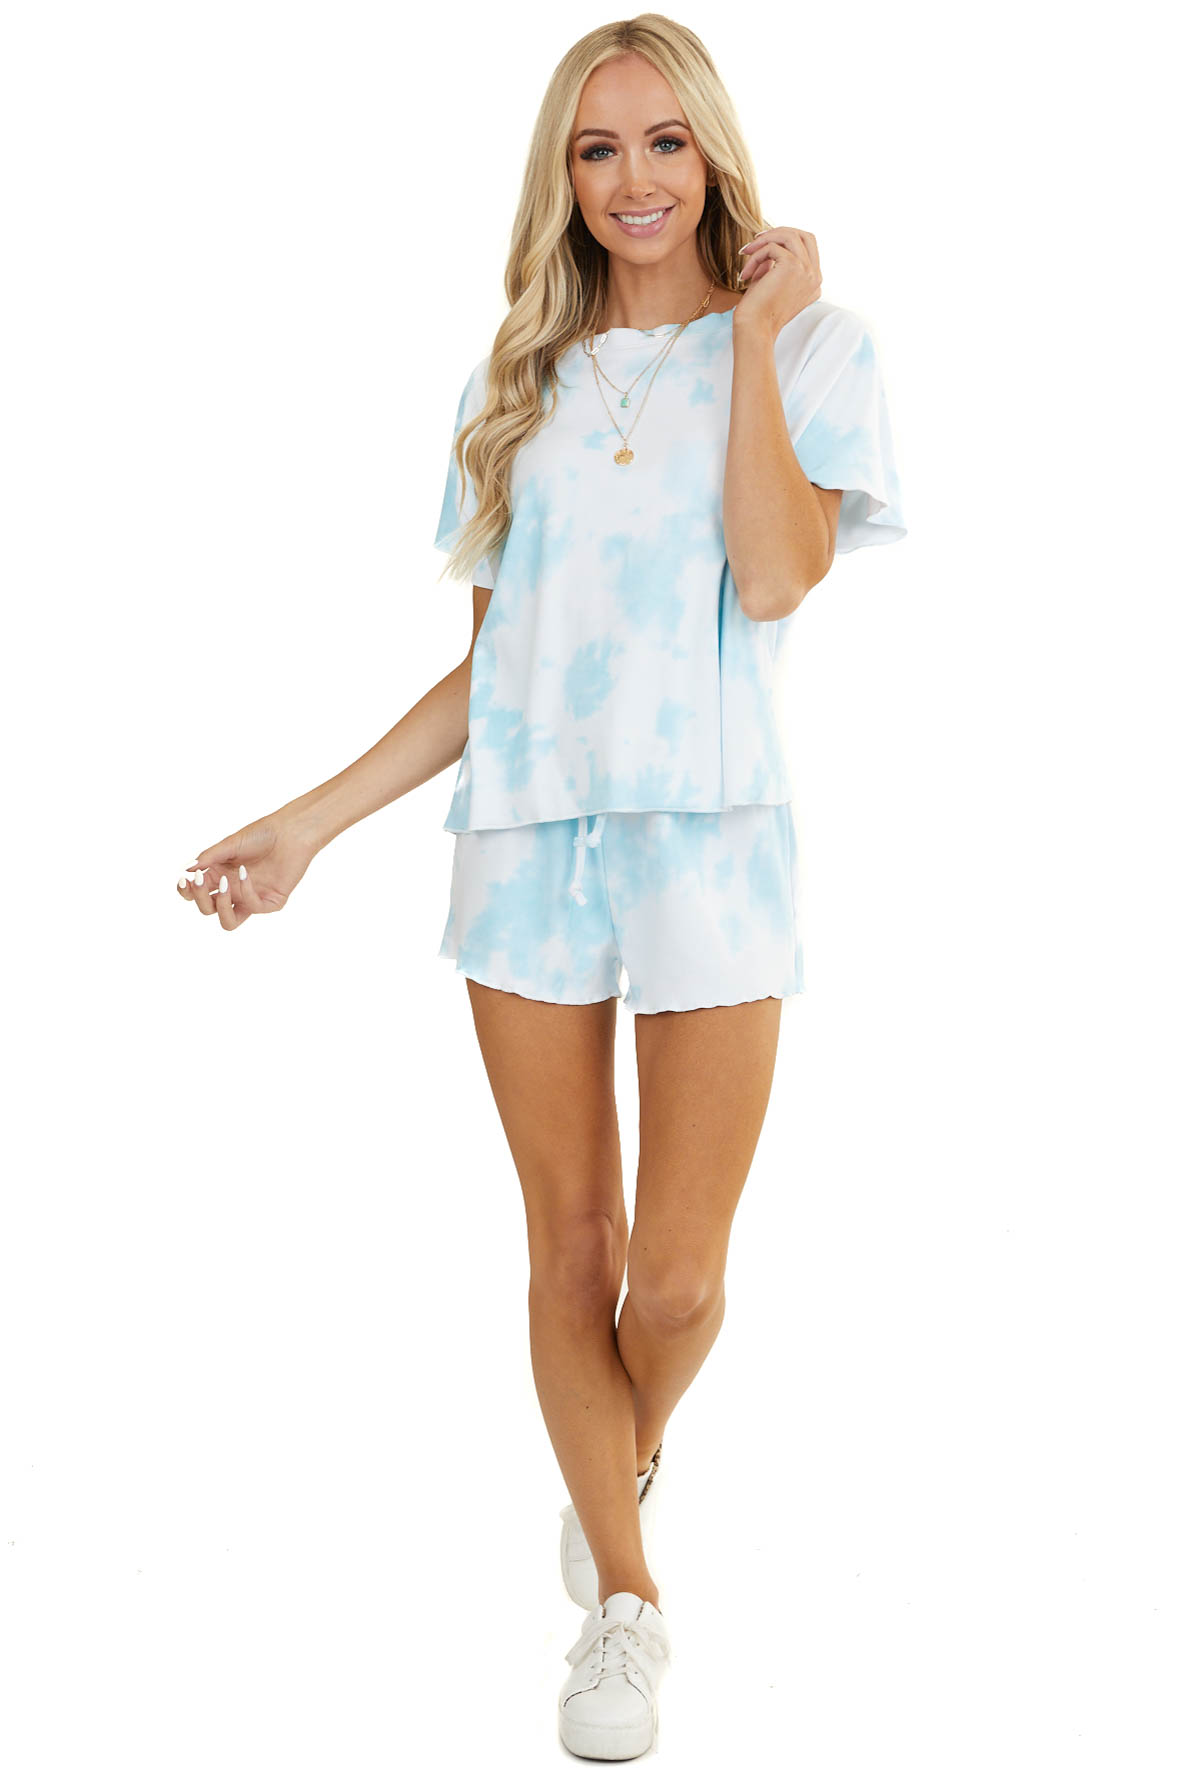 Sky Blue Tie Dye Short Sleeve Top and Shorts Loungewear Set